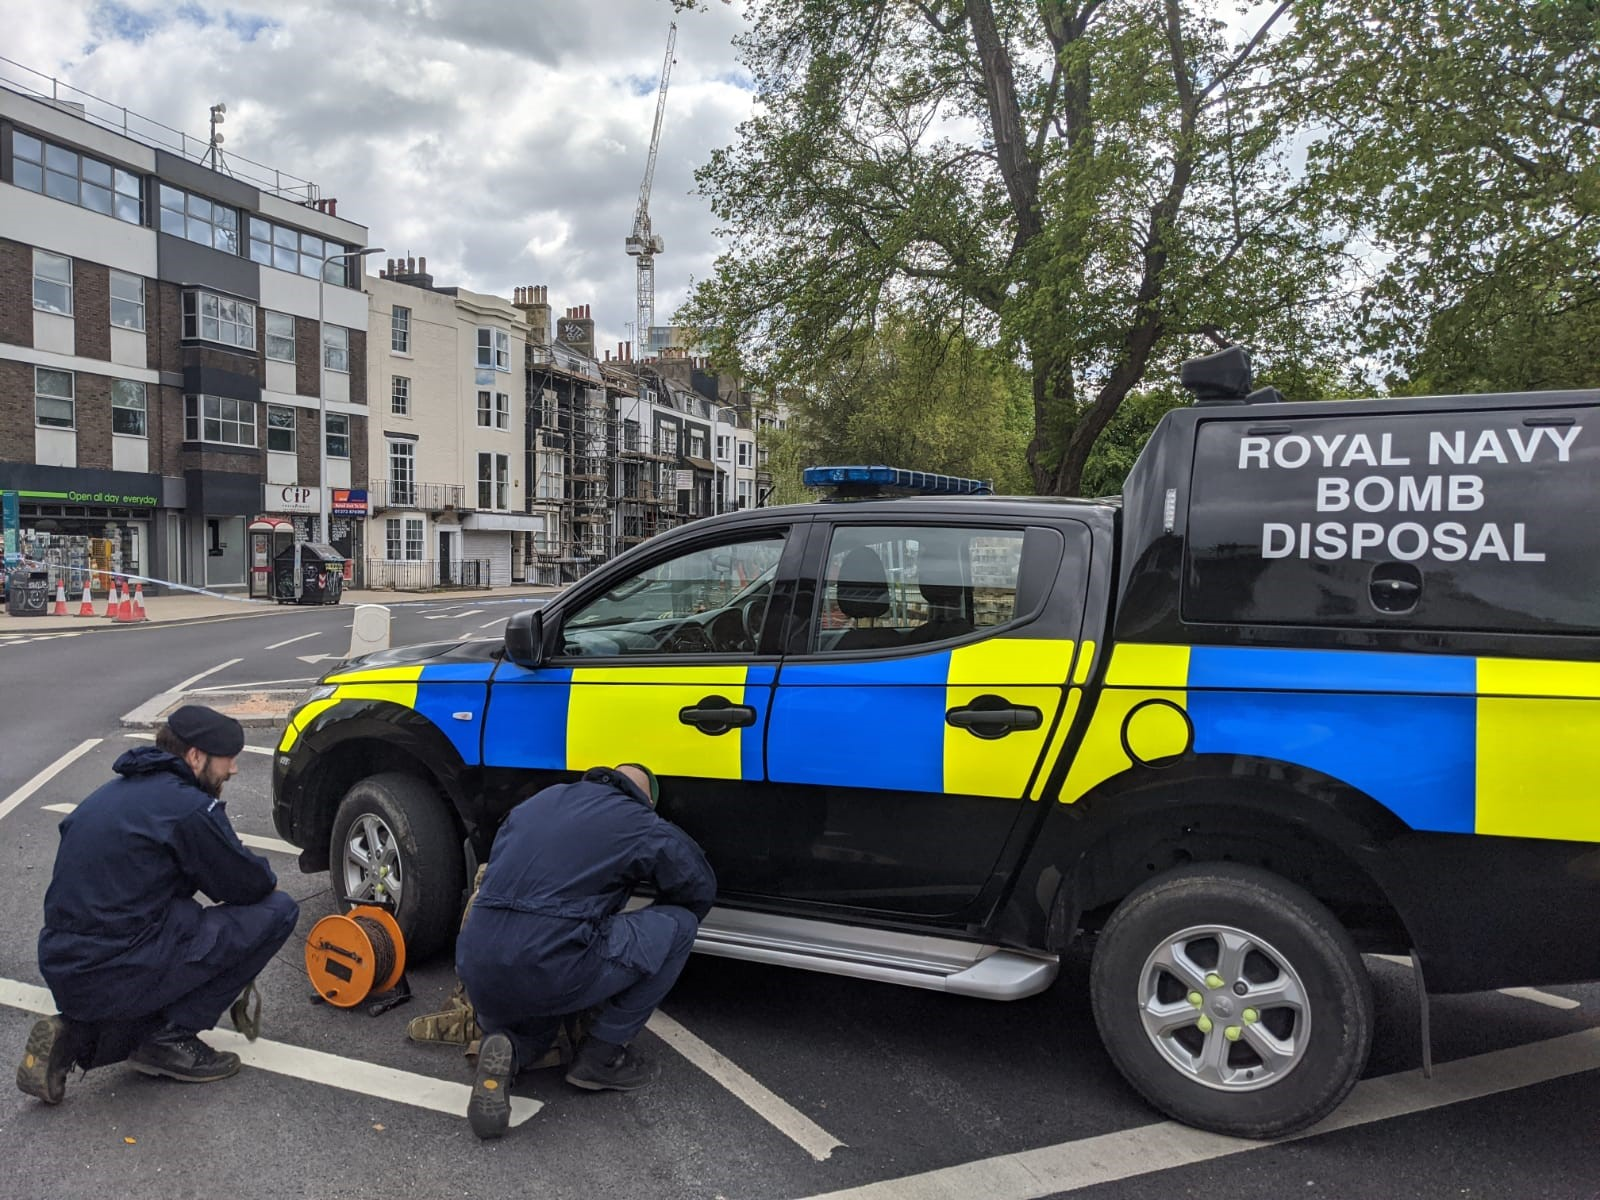 Closer Look at a 2-inch mortar bomb unearthed in Brighton yesterday